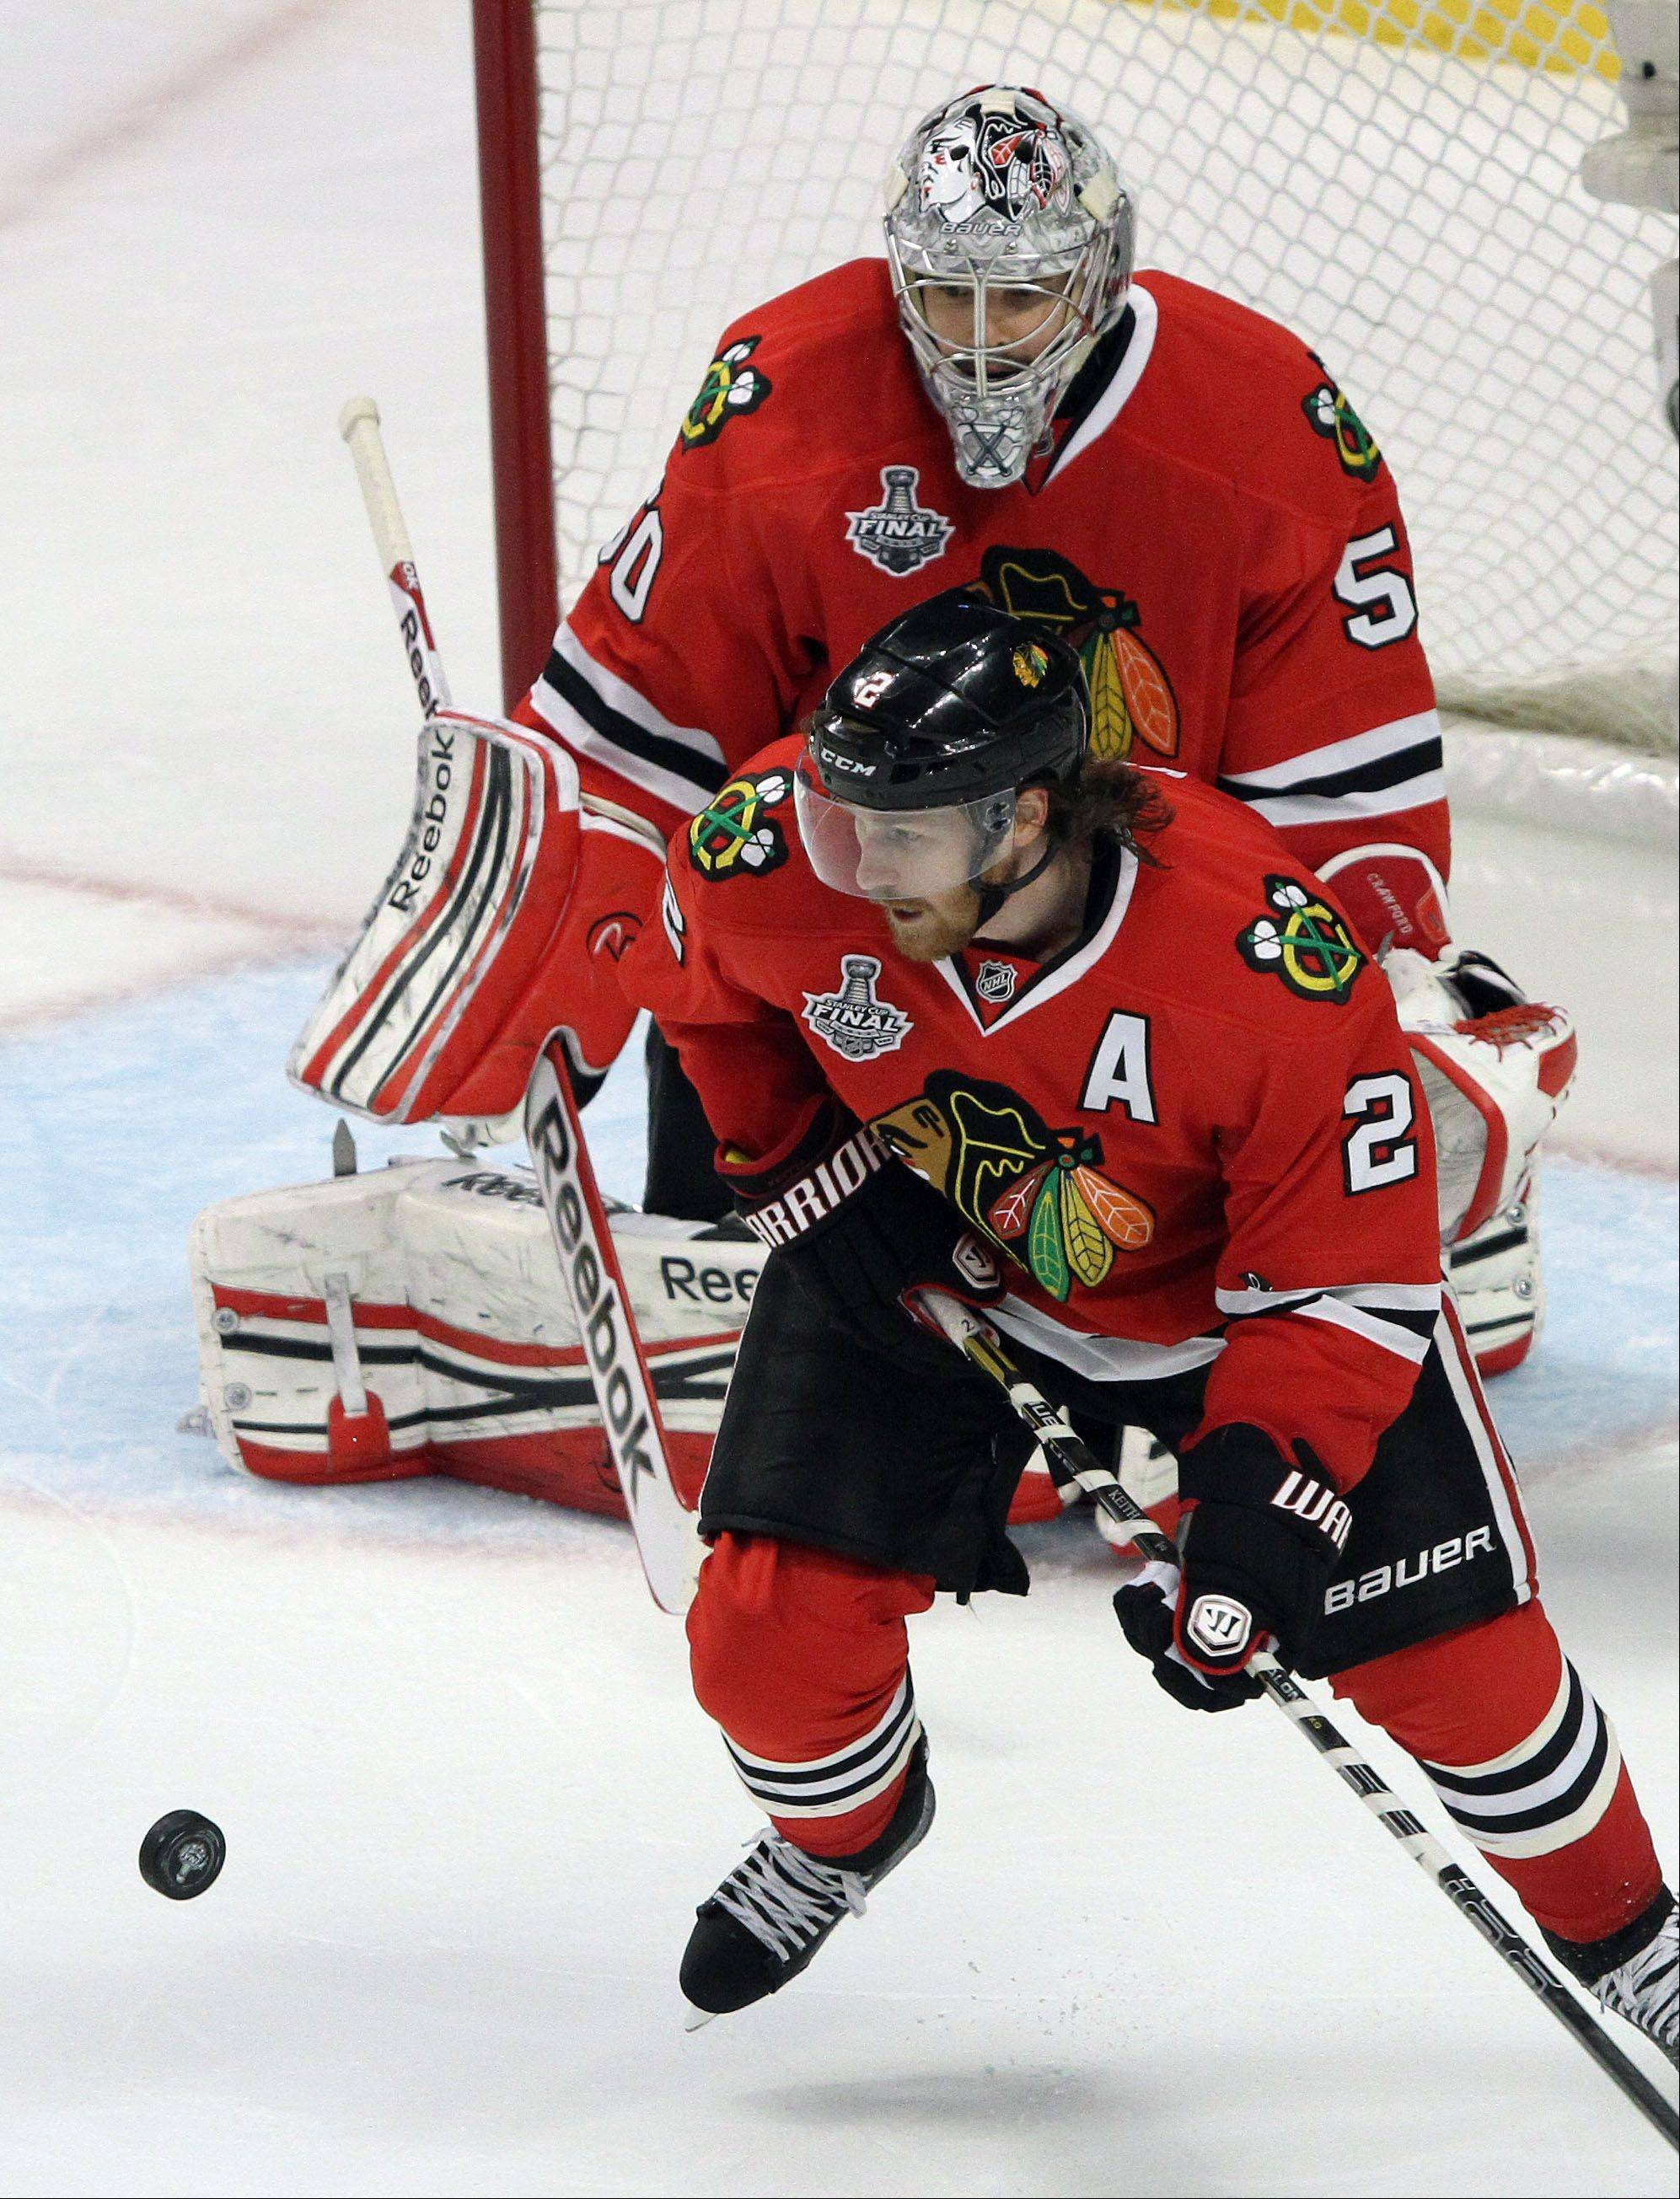 The Blackhawks' Duncan Keith said that the Bruins' penalty killers deserve some credit for holding the Hawks scoreless in 6 power plays during the first two games of the Stanley Cup Final.